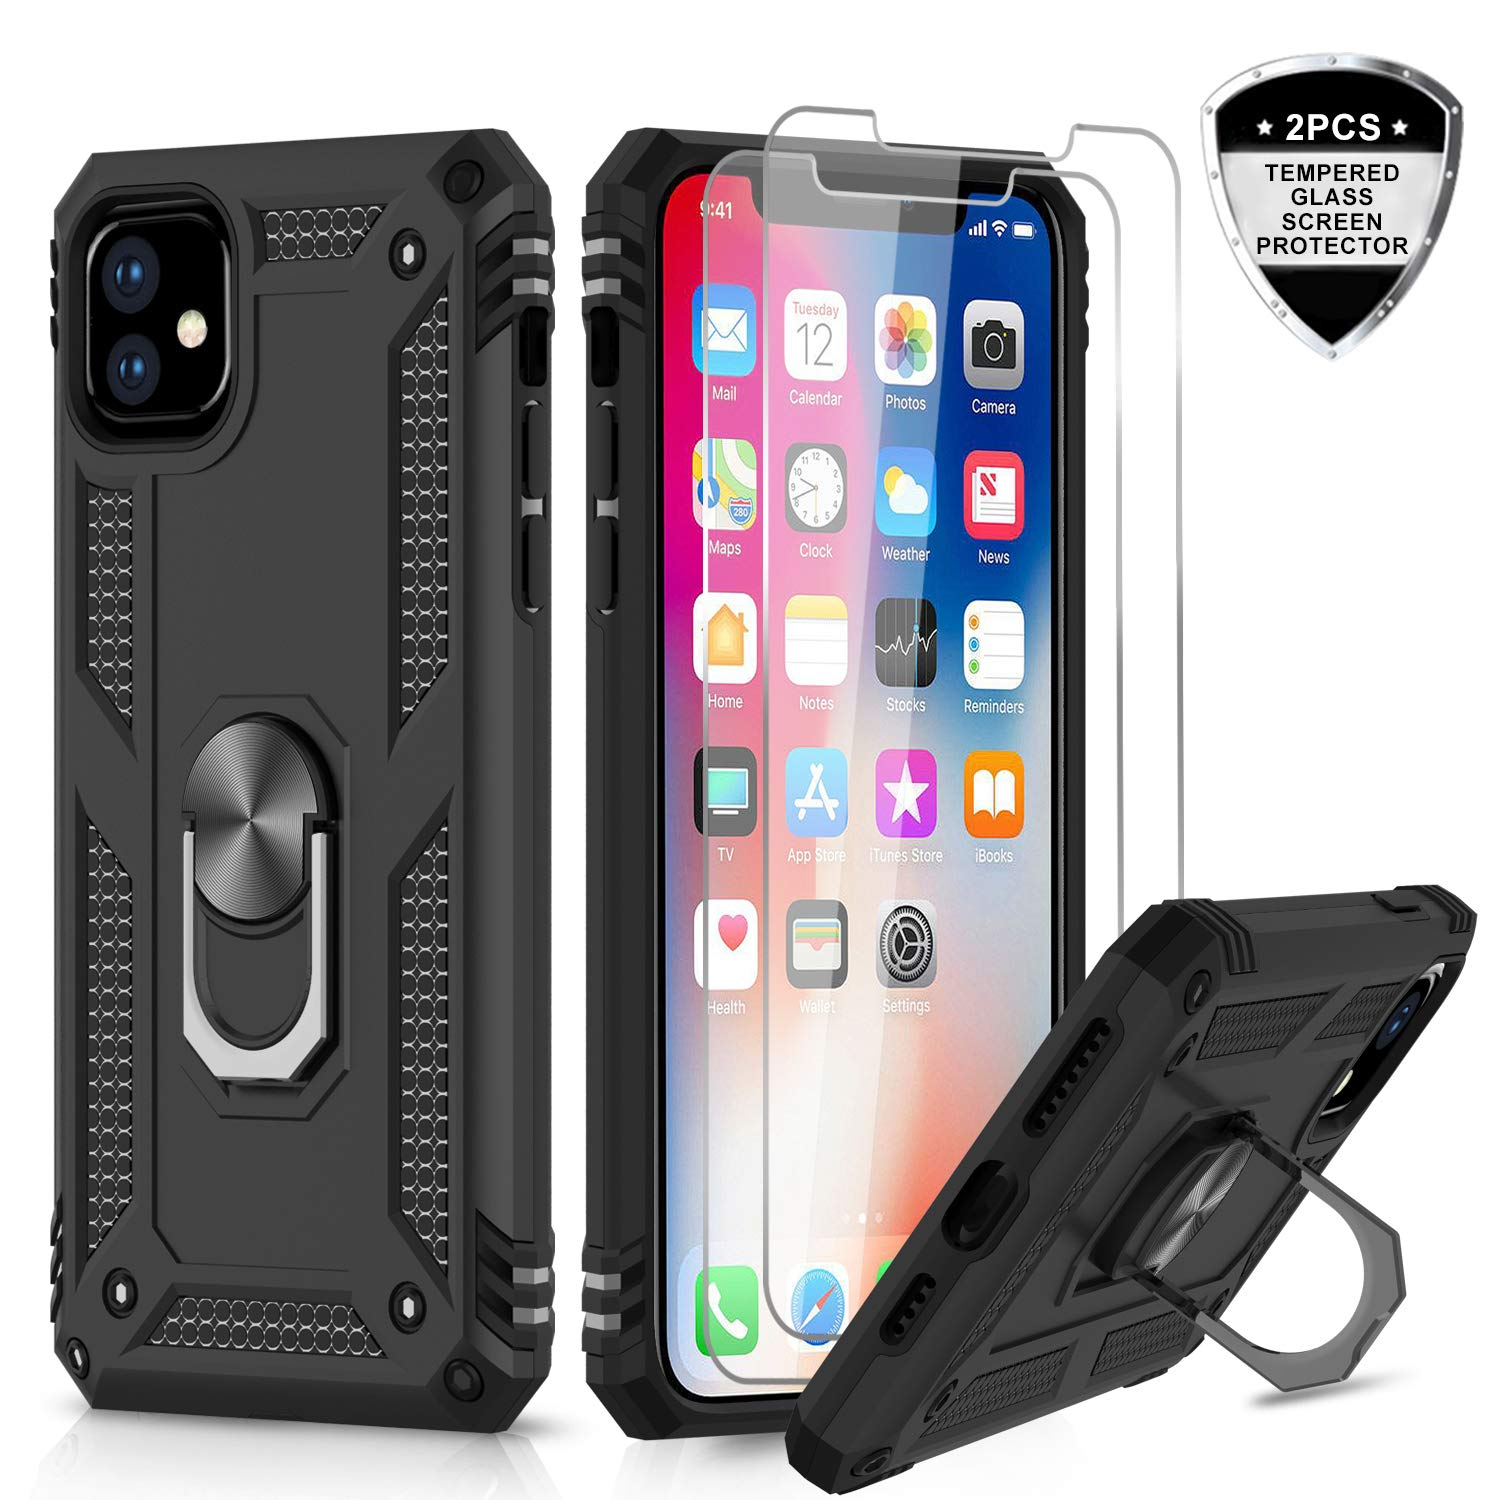 Funda + Vidrio Iphone 11 Con Pie LEYI [7VRRVM2V]